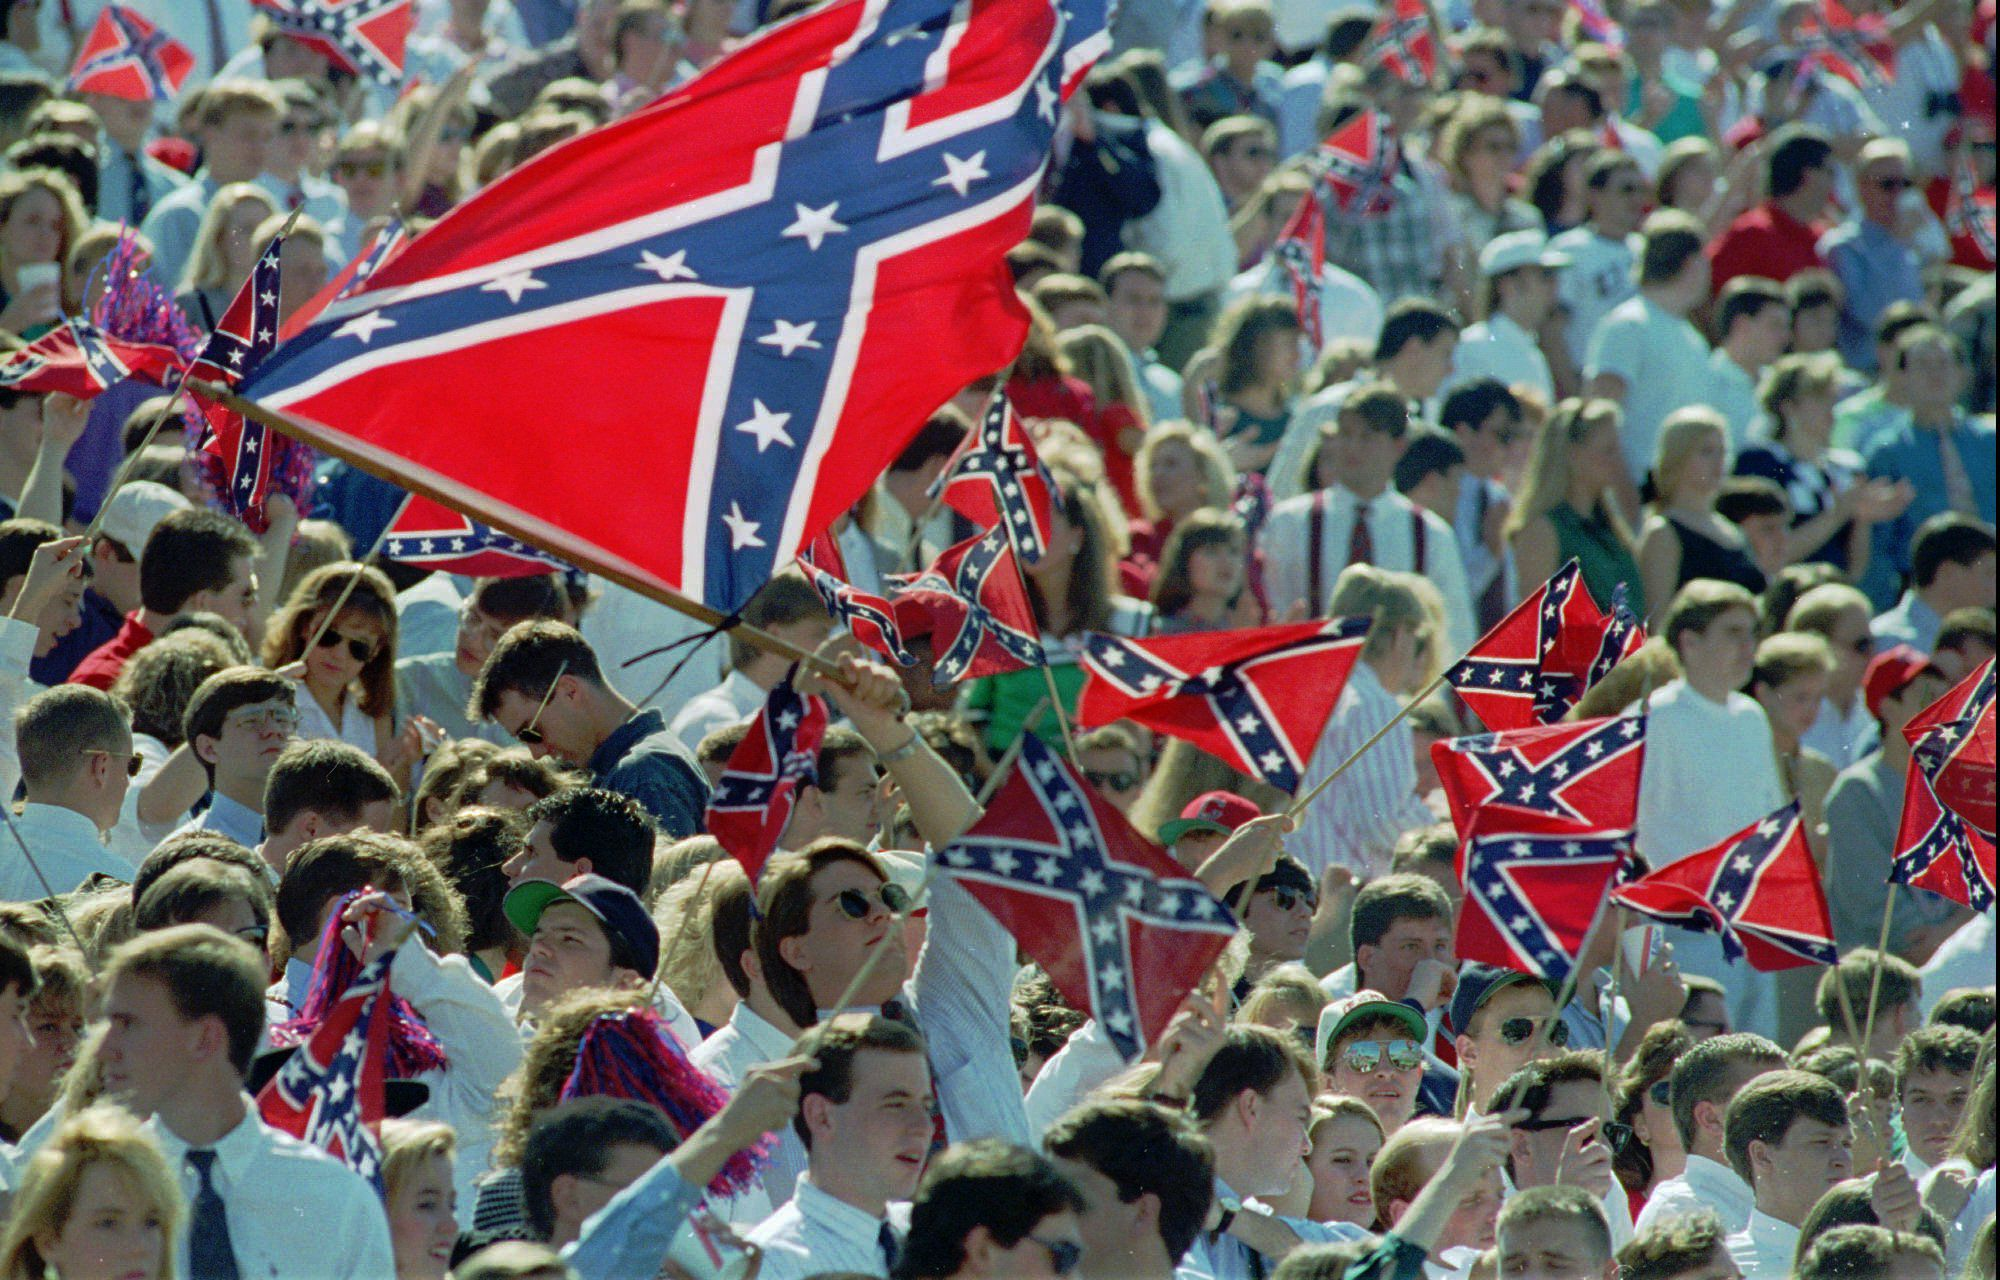 """Although the University of Mississippi has been disassociated for about 14 years from the """"Rebel"""" flag, shown being waved at an undated 1995 football game at the Oxford, Miss., institution, the school is concerned that discussions of past and present symbols such as the flag, the mascot Colonel Rebel and the fight song """"Dixie"""", will over shadow its current mission of developing a positive academic image. (AP Photo/Tannen Maury)"""